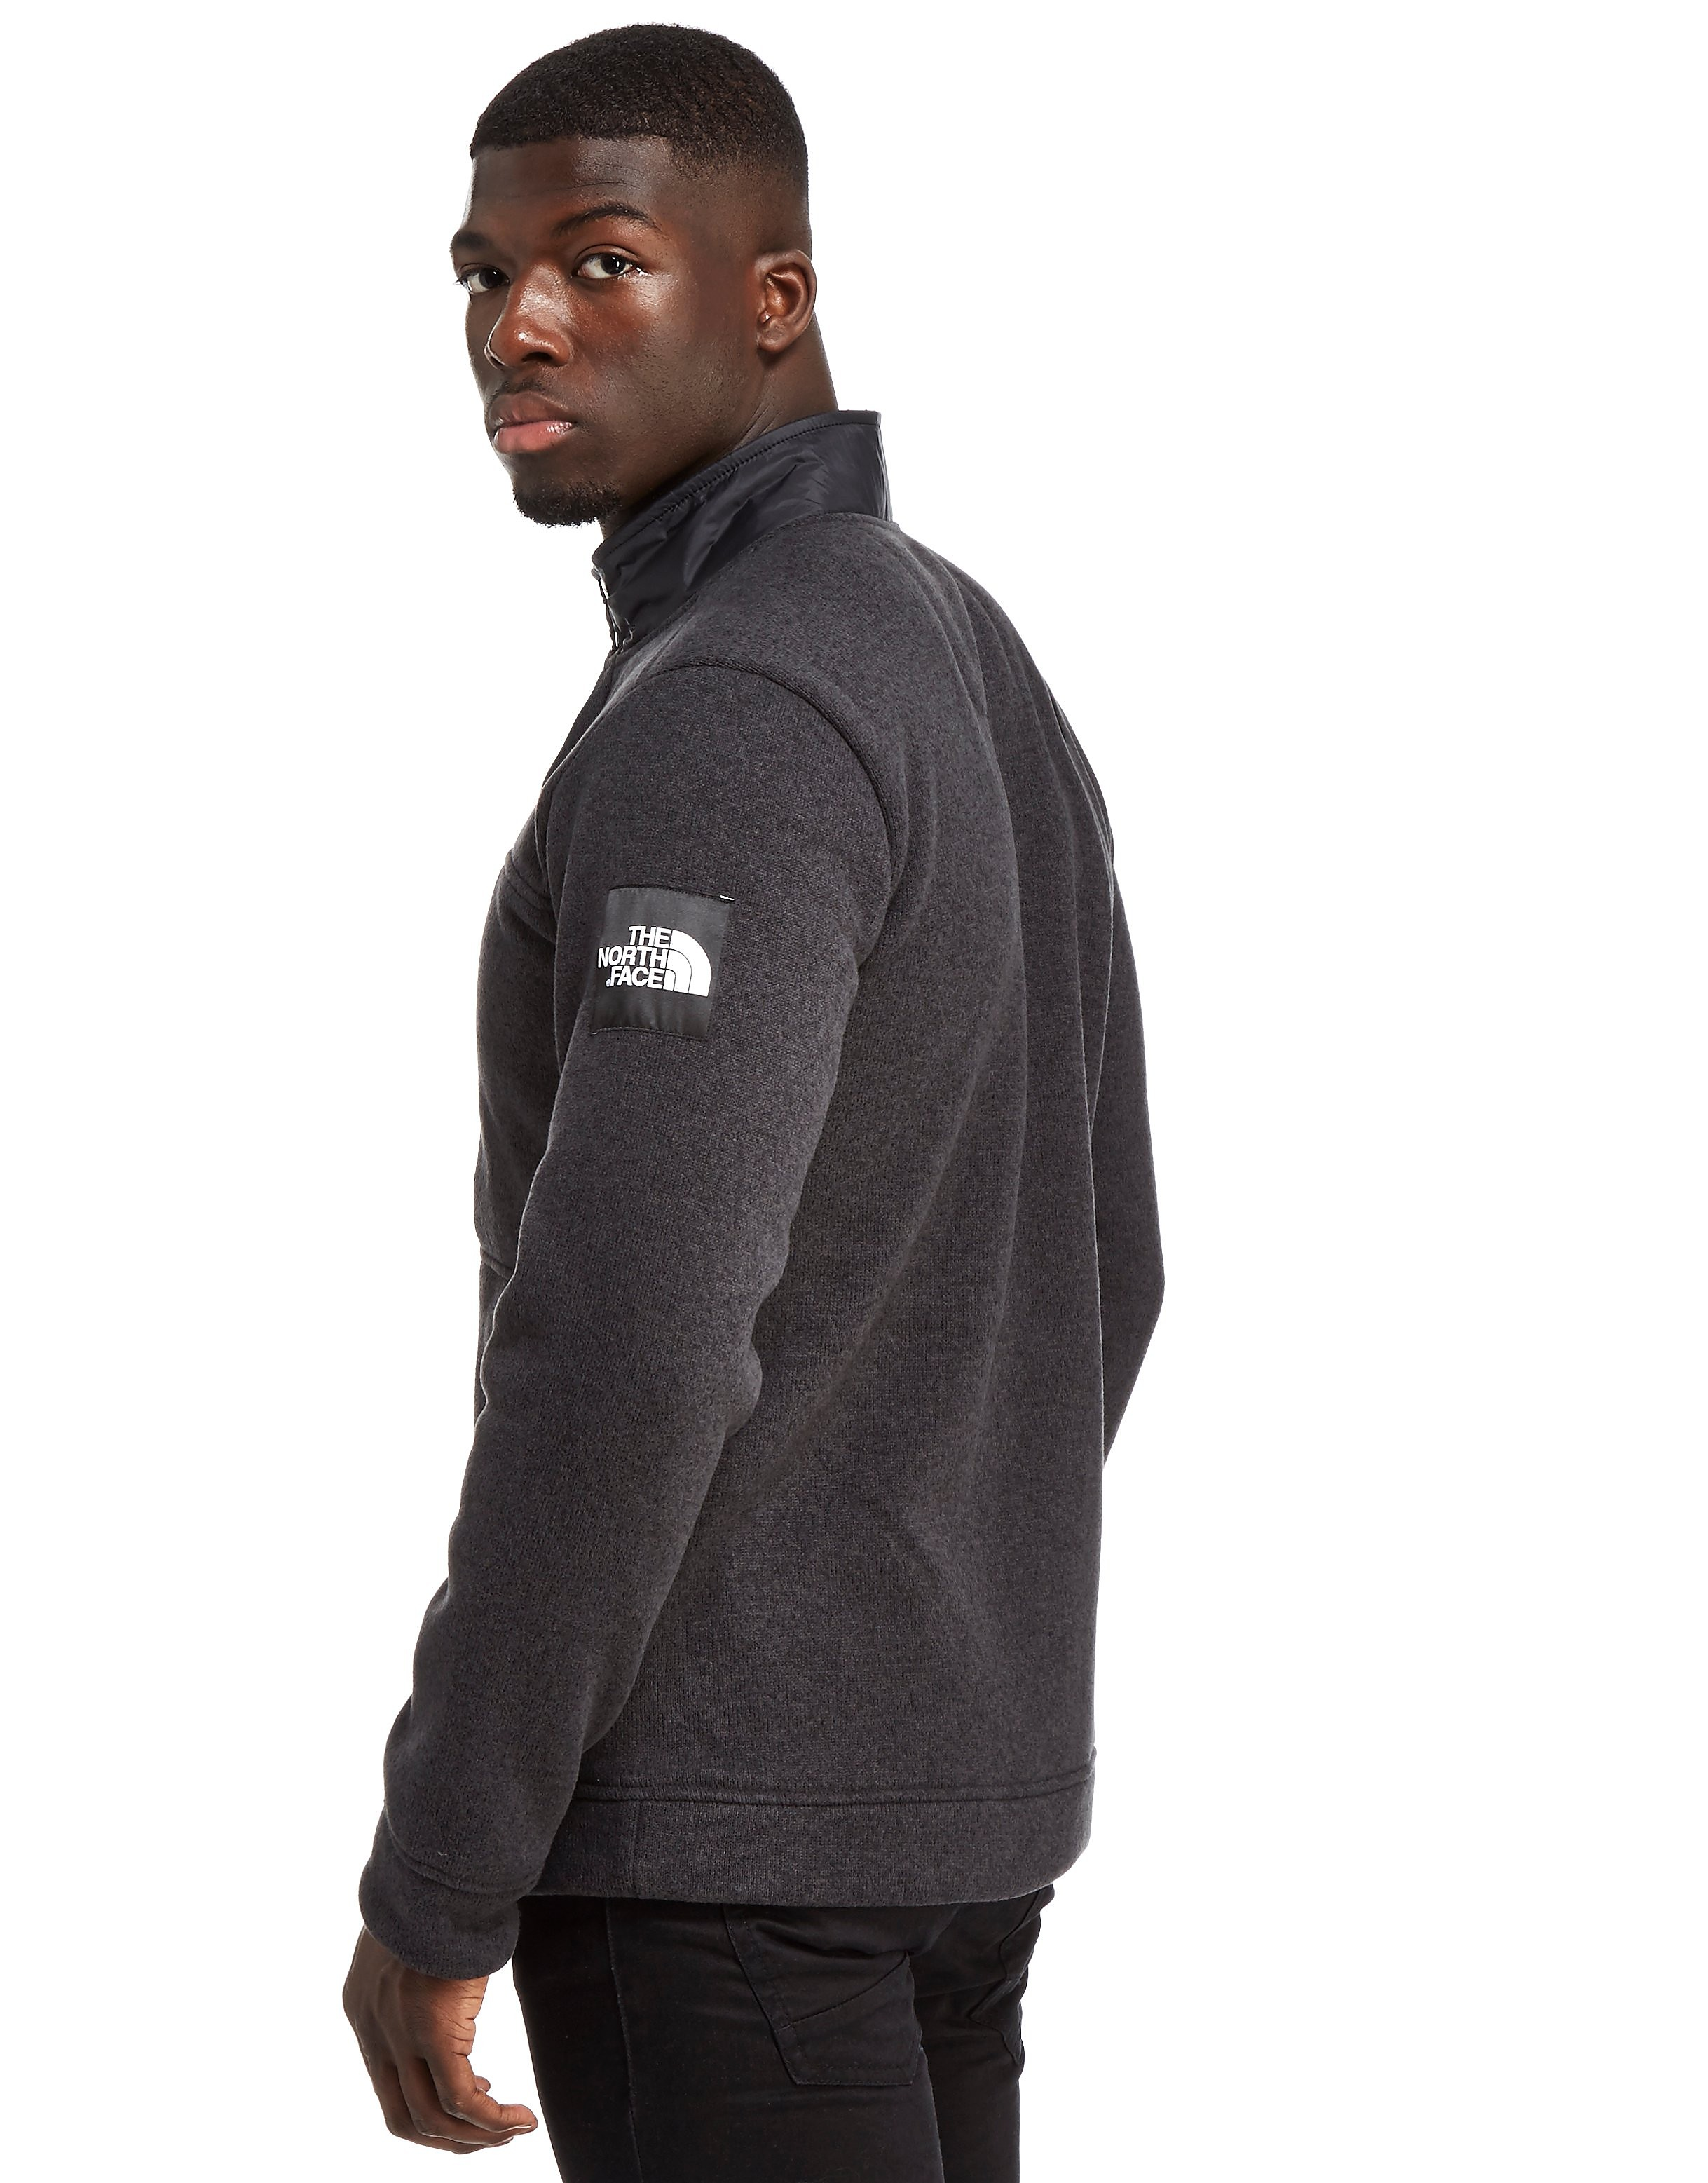 The North Face Black Label Denali Cardigan